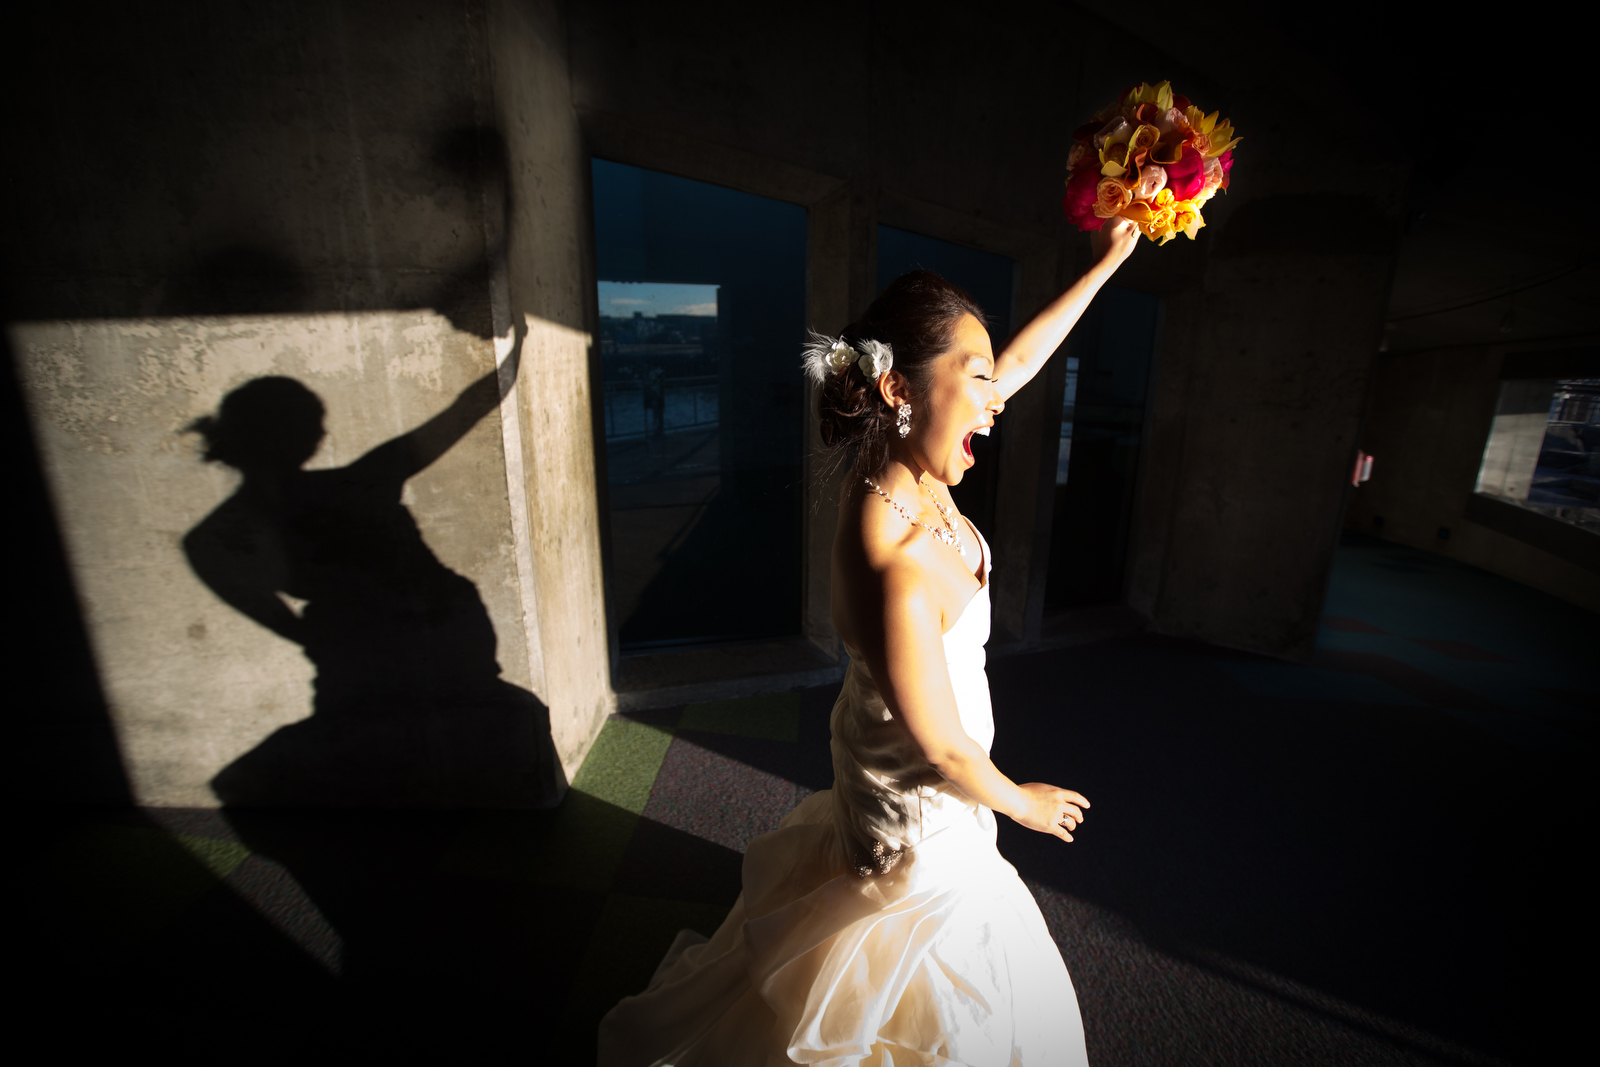 The bride raises her bouquet as she celebrates her wedding at the Seattle Aquarium. (Wedding Photography by Scott Eklund - Red Box Picures)